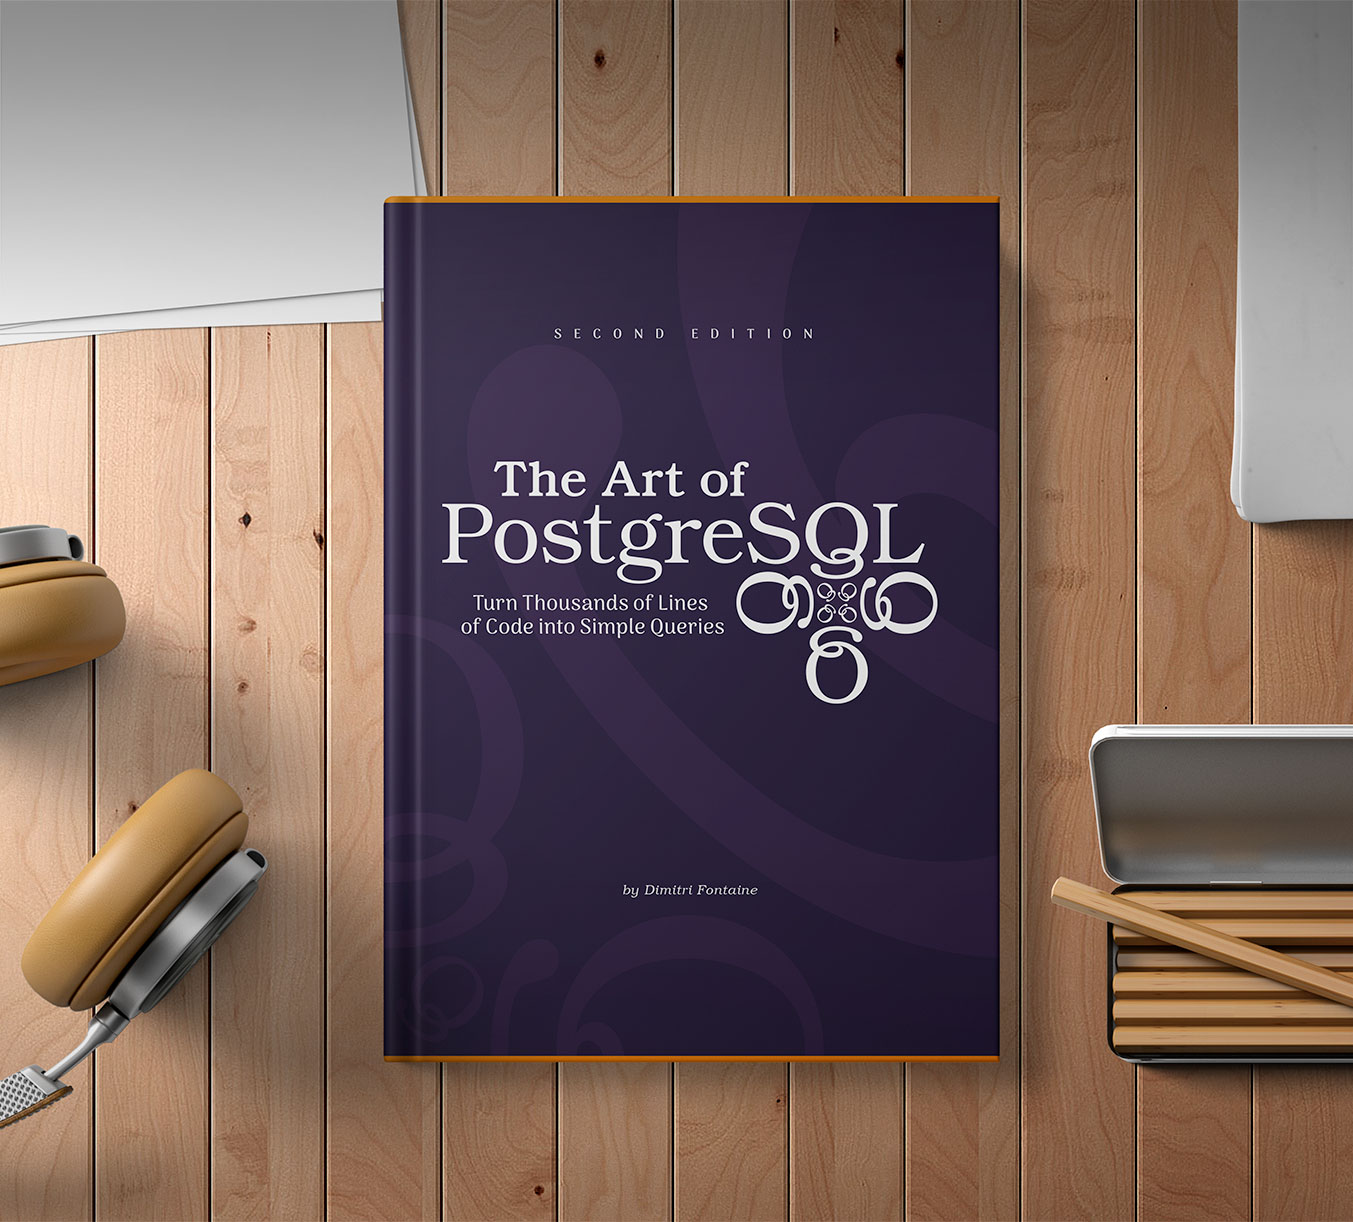 The Art of PostgreSQL: a modern PostgreSQL book in 2019